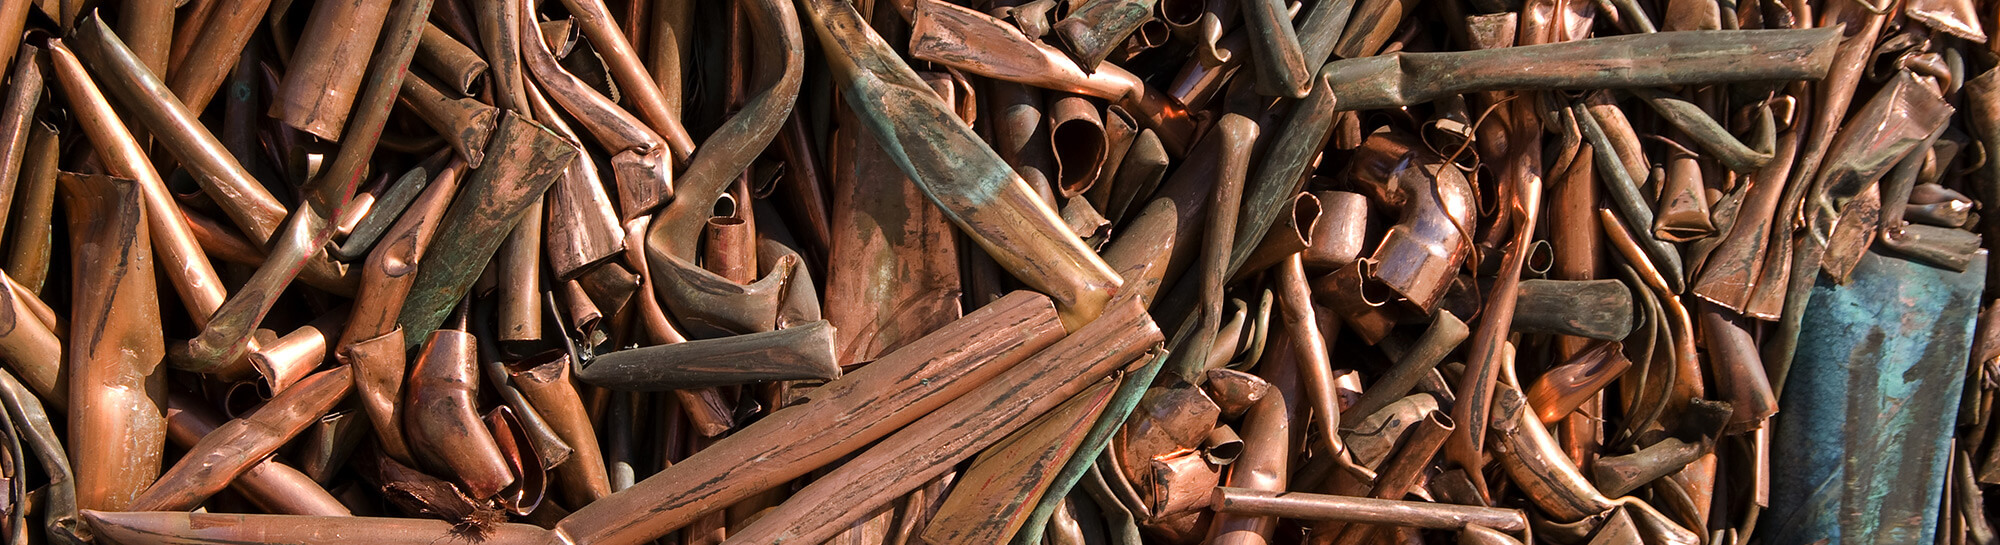 Pile of copper pipe